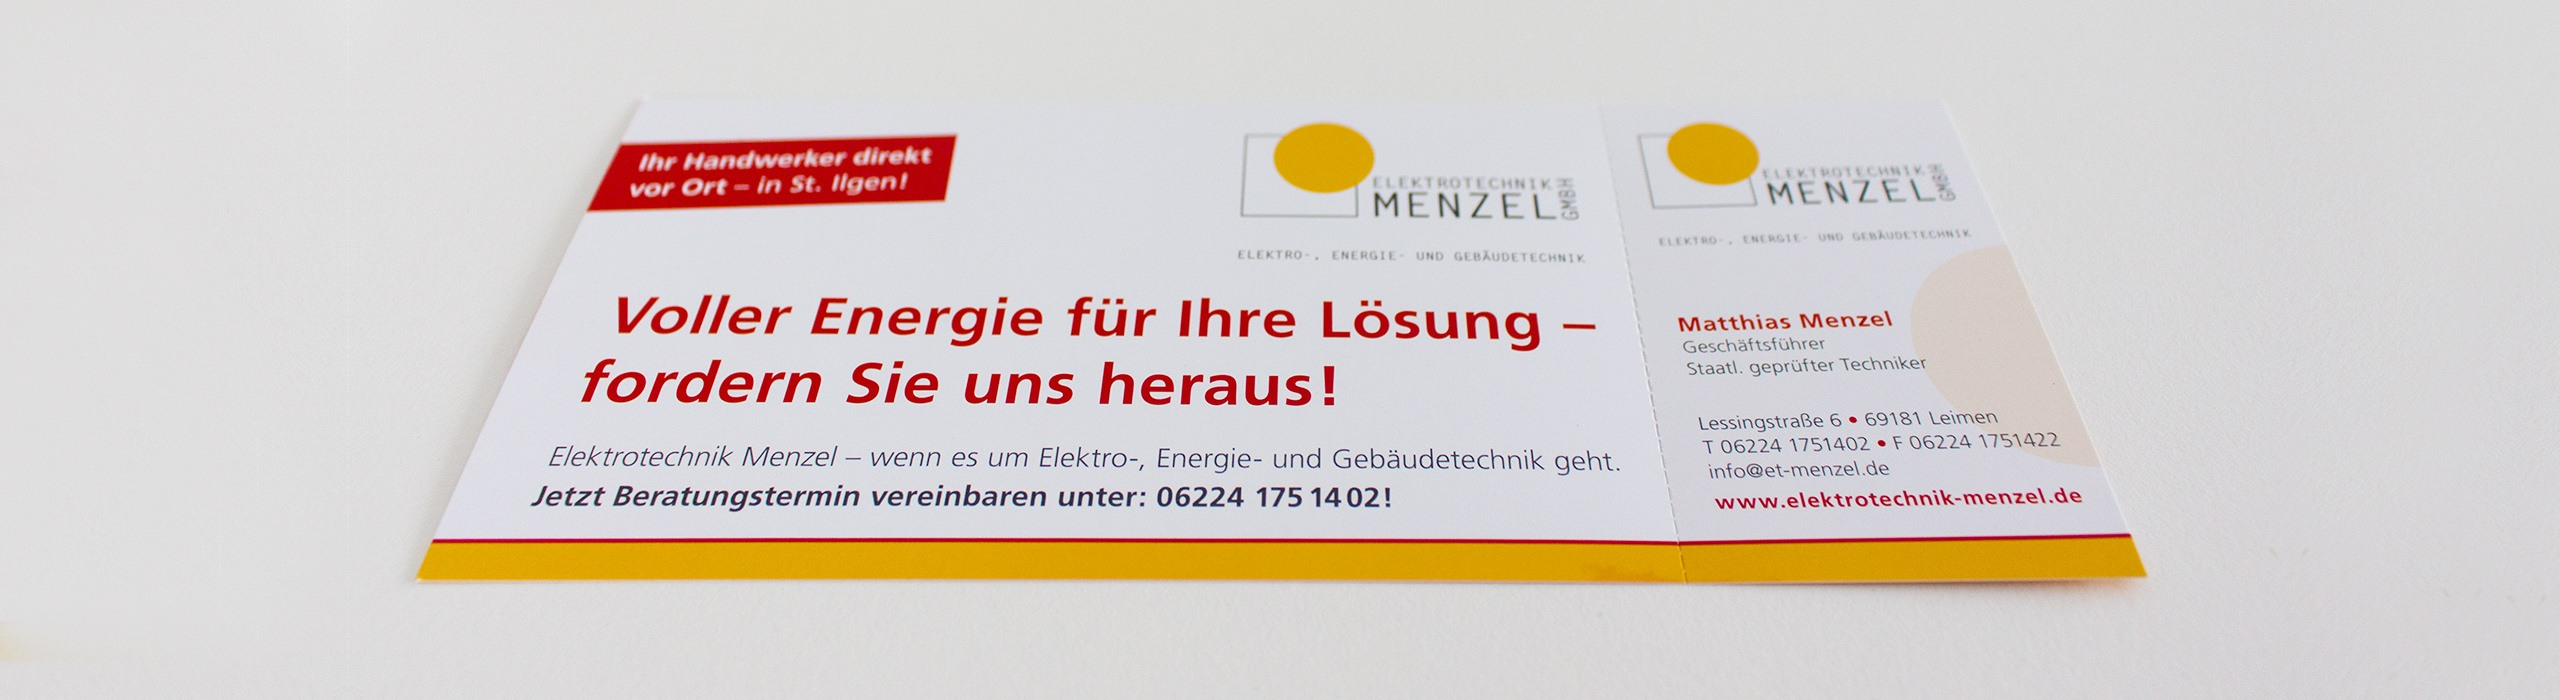 Flyer mit Perforation